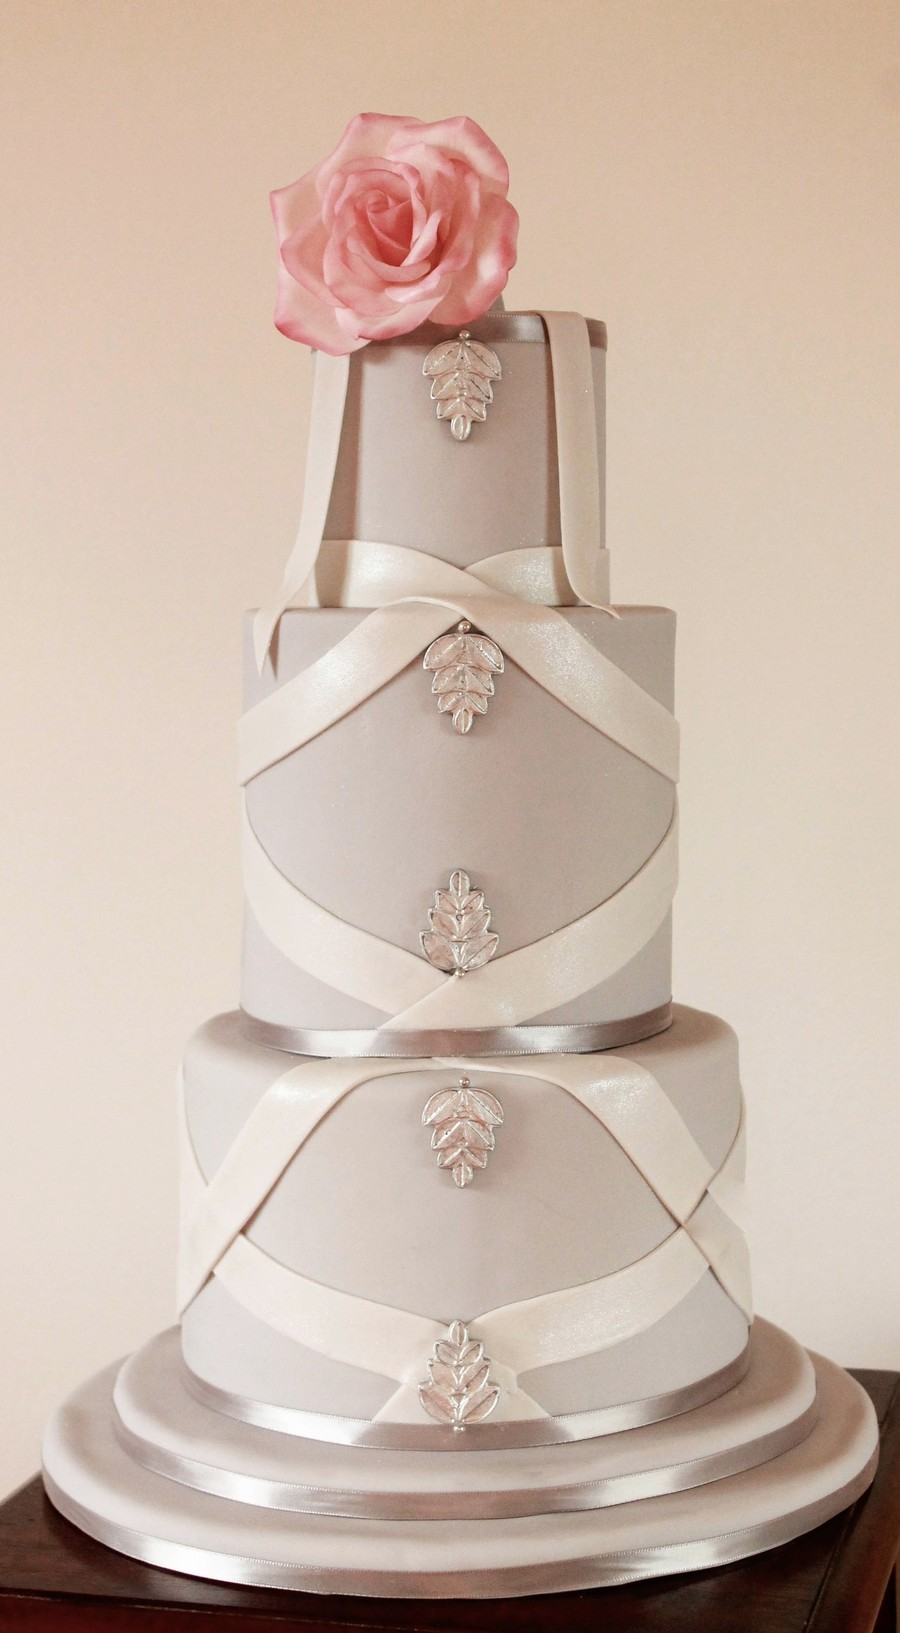 Simple And Modern on Cake Central